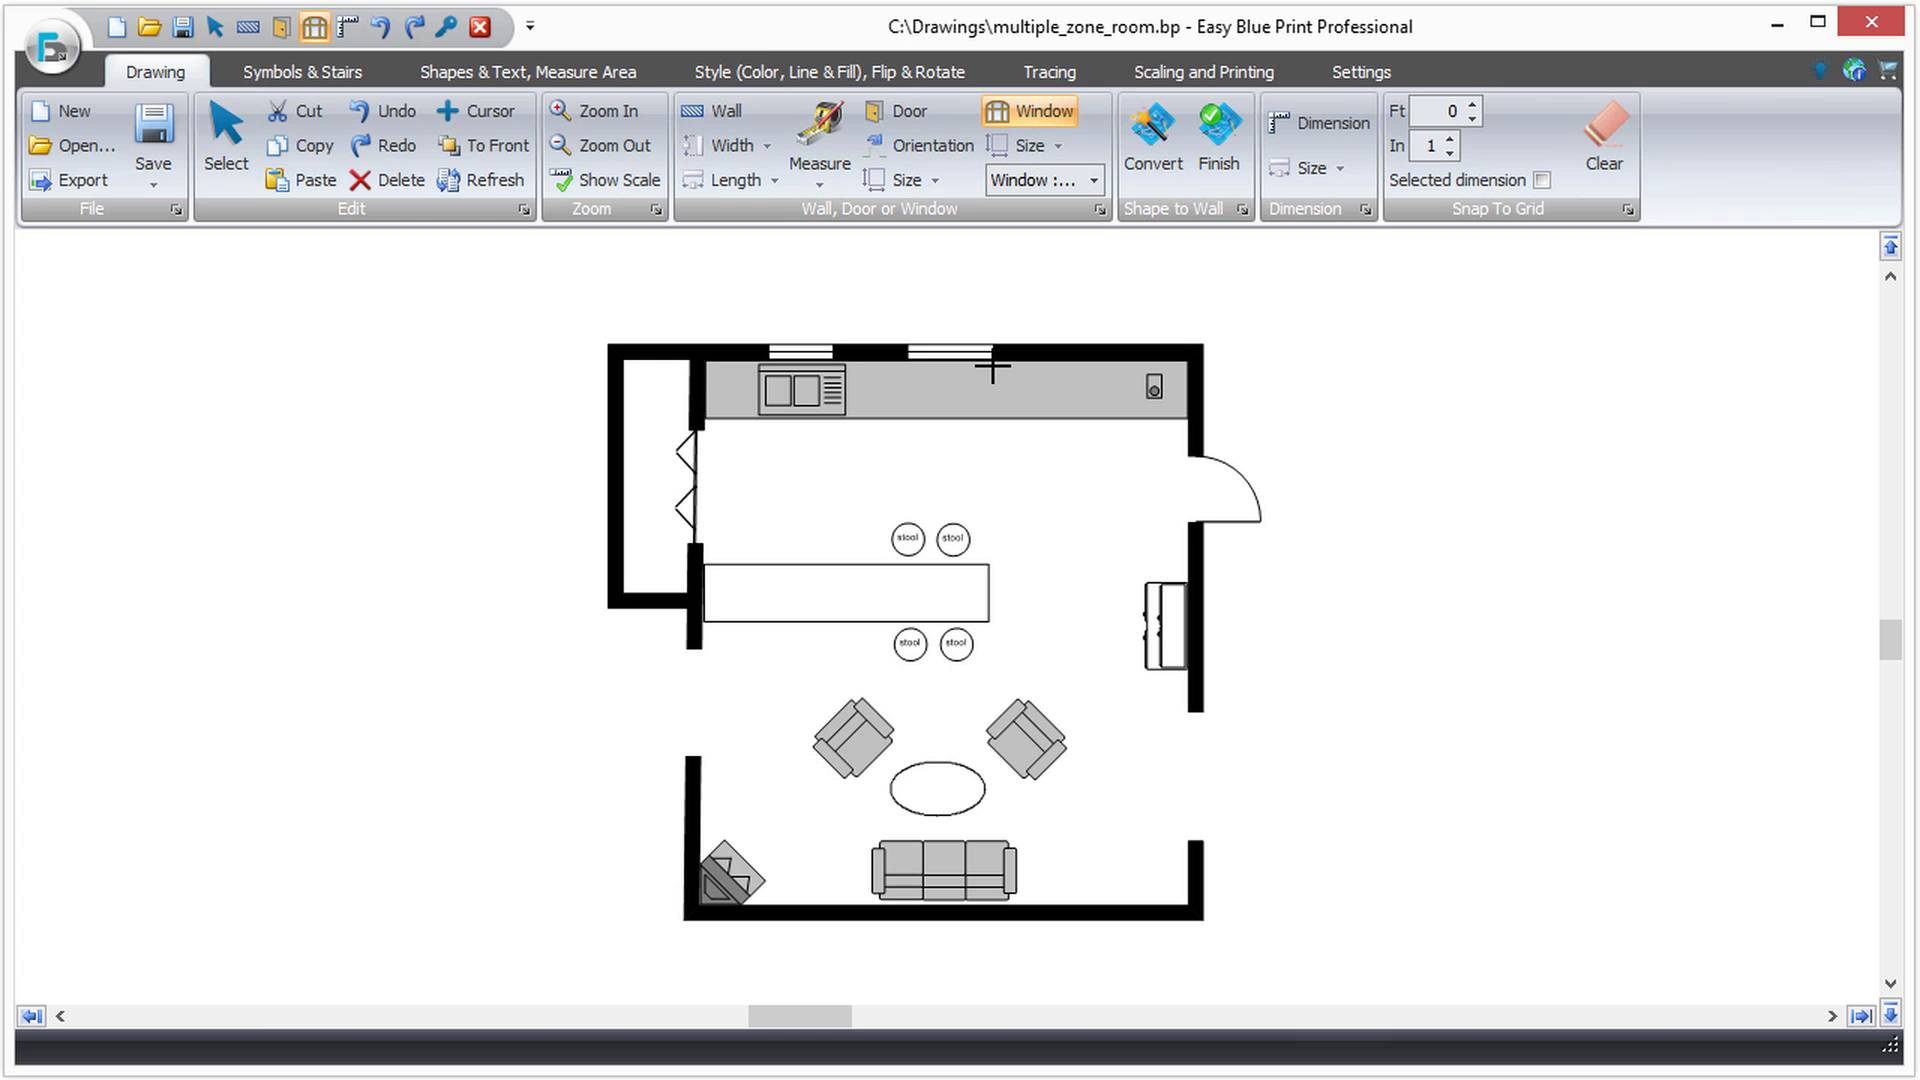 Design your home or office